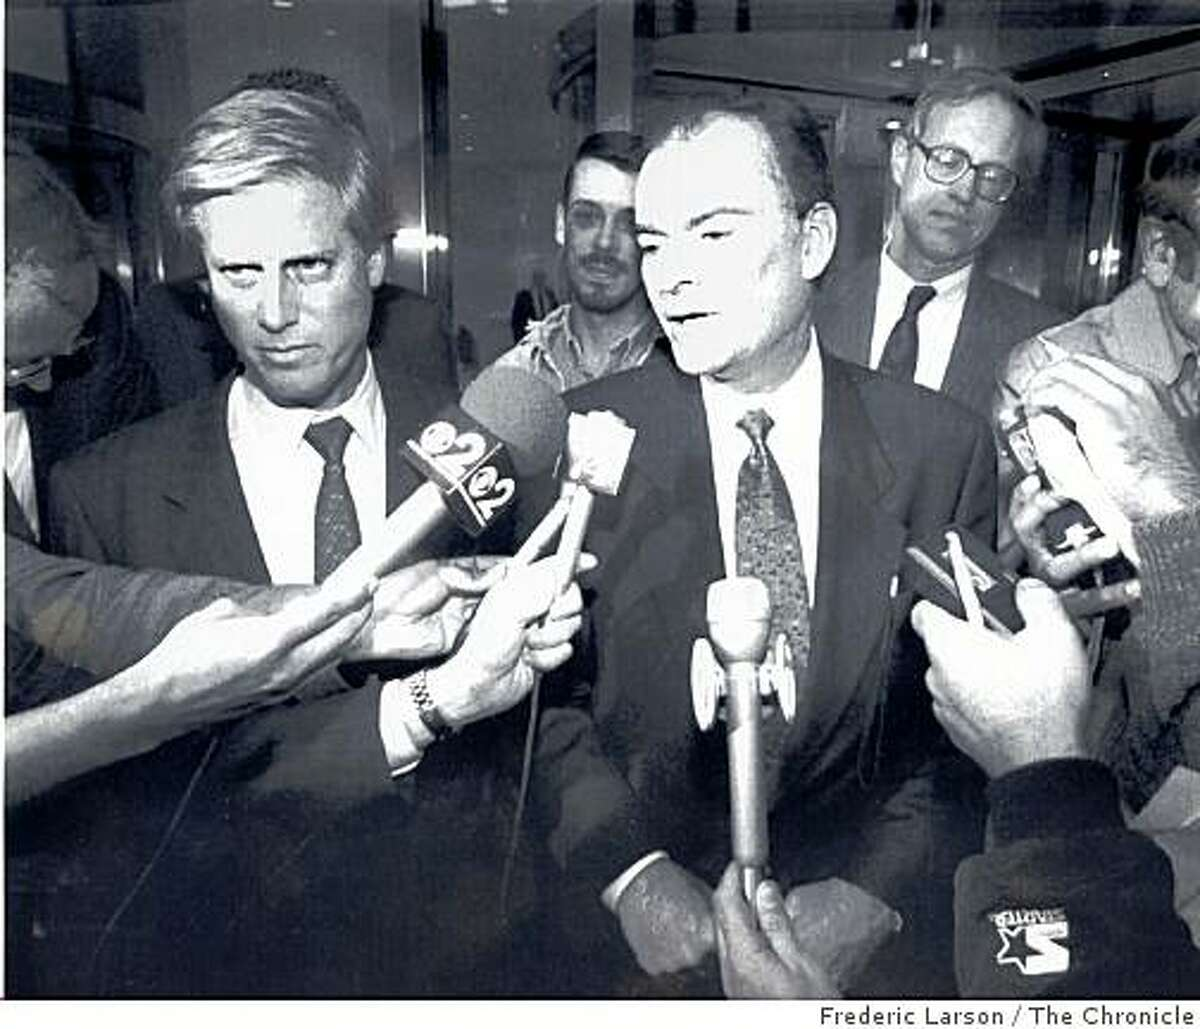 Peter Magowan and San Francisco Mayor Frank Jordan talk to the press on the sidewalk of the National League offices on Park Avenue in New York on October 12, 1992. The pair were there to deliver Magowan's offer to buy the Giants to National League president Bill White. The last time a professional sports team packed its bags to leave San Francisco, the city responded with tenacious force. There were public rallies, private meetings and everything in-between, with the mayor in the thick of the fray. But that was 1992. The team was the Giants, not the 49ers.